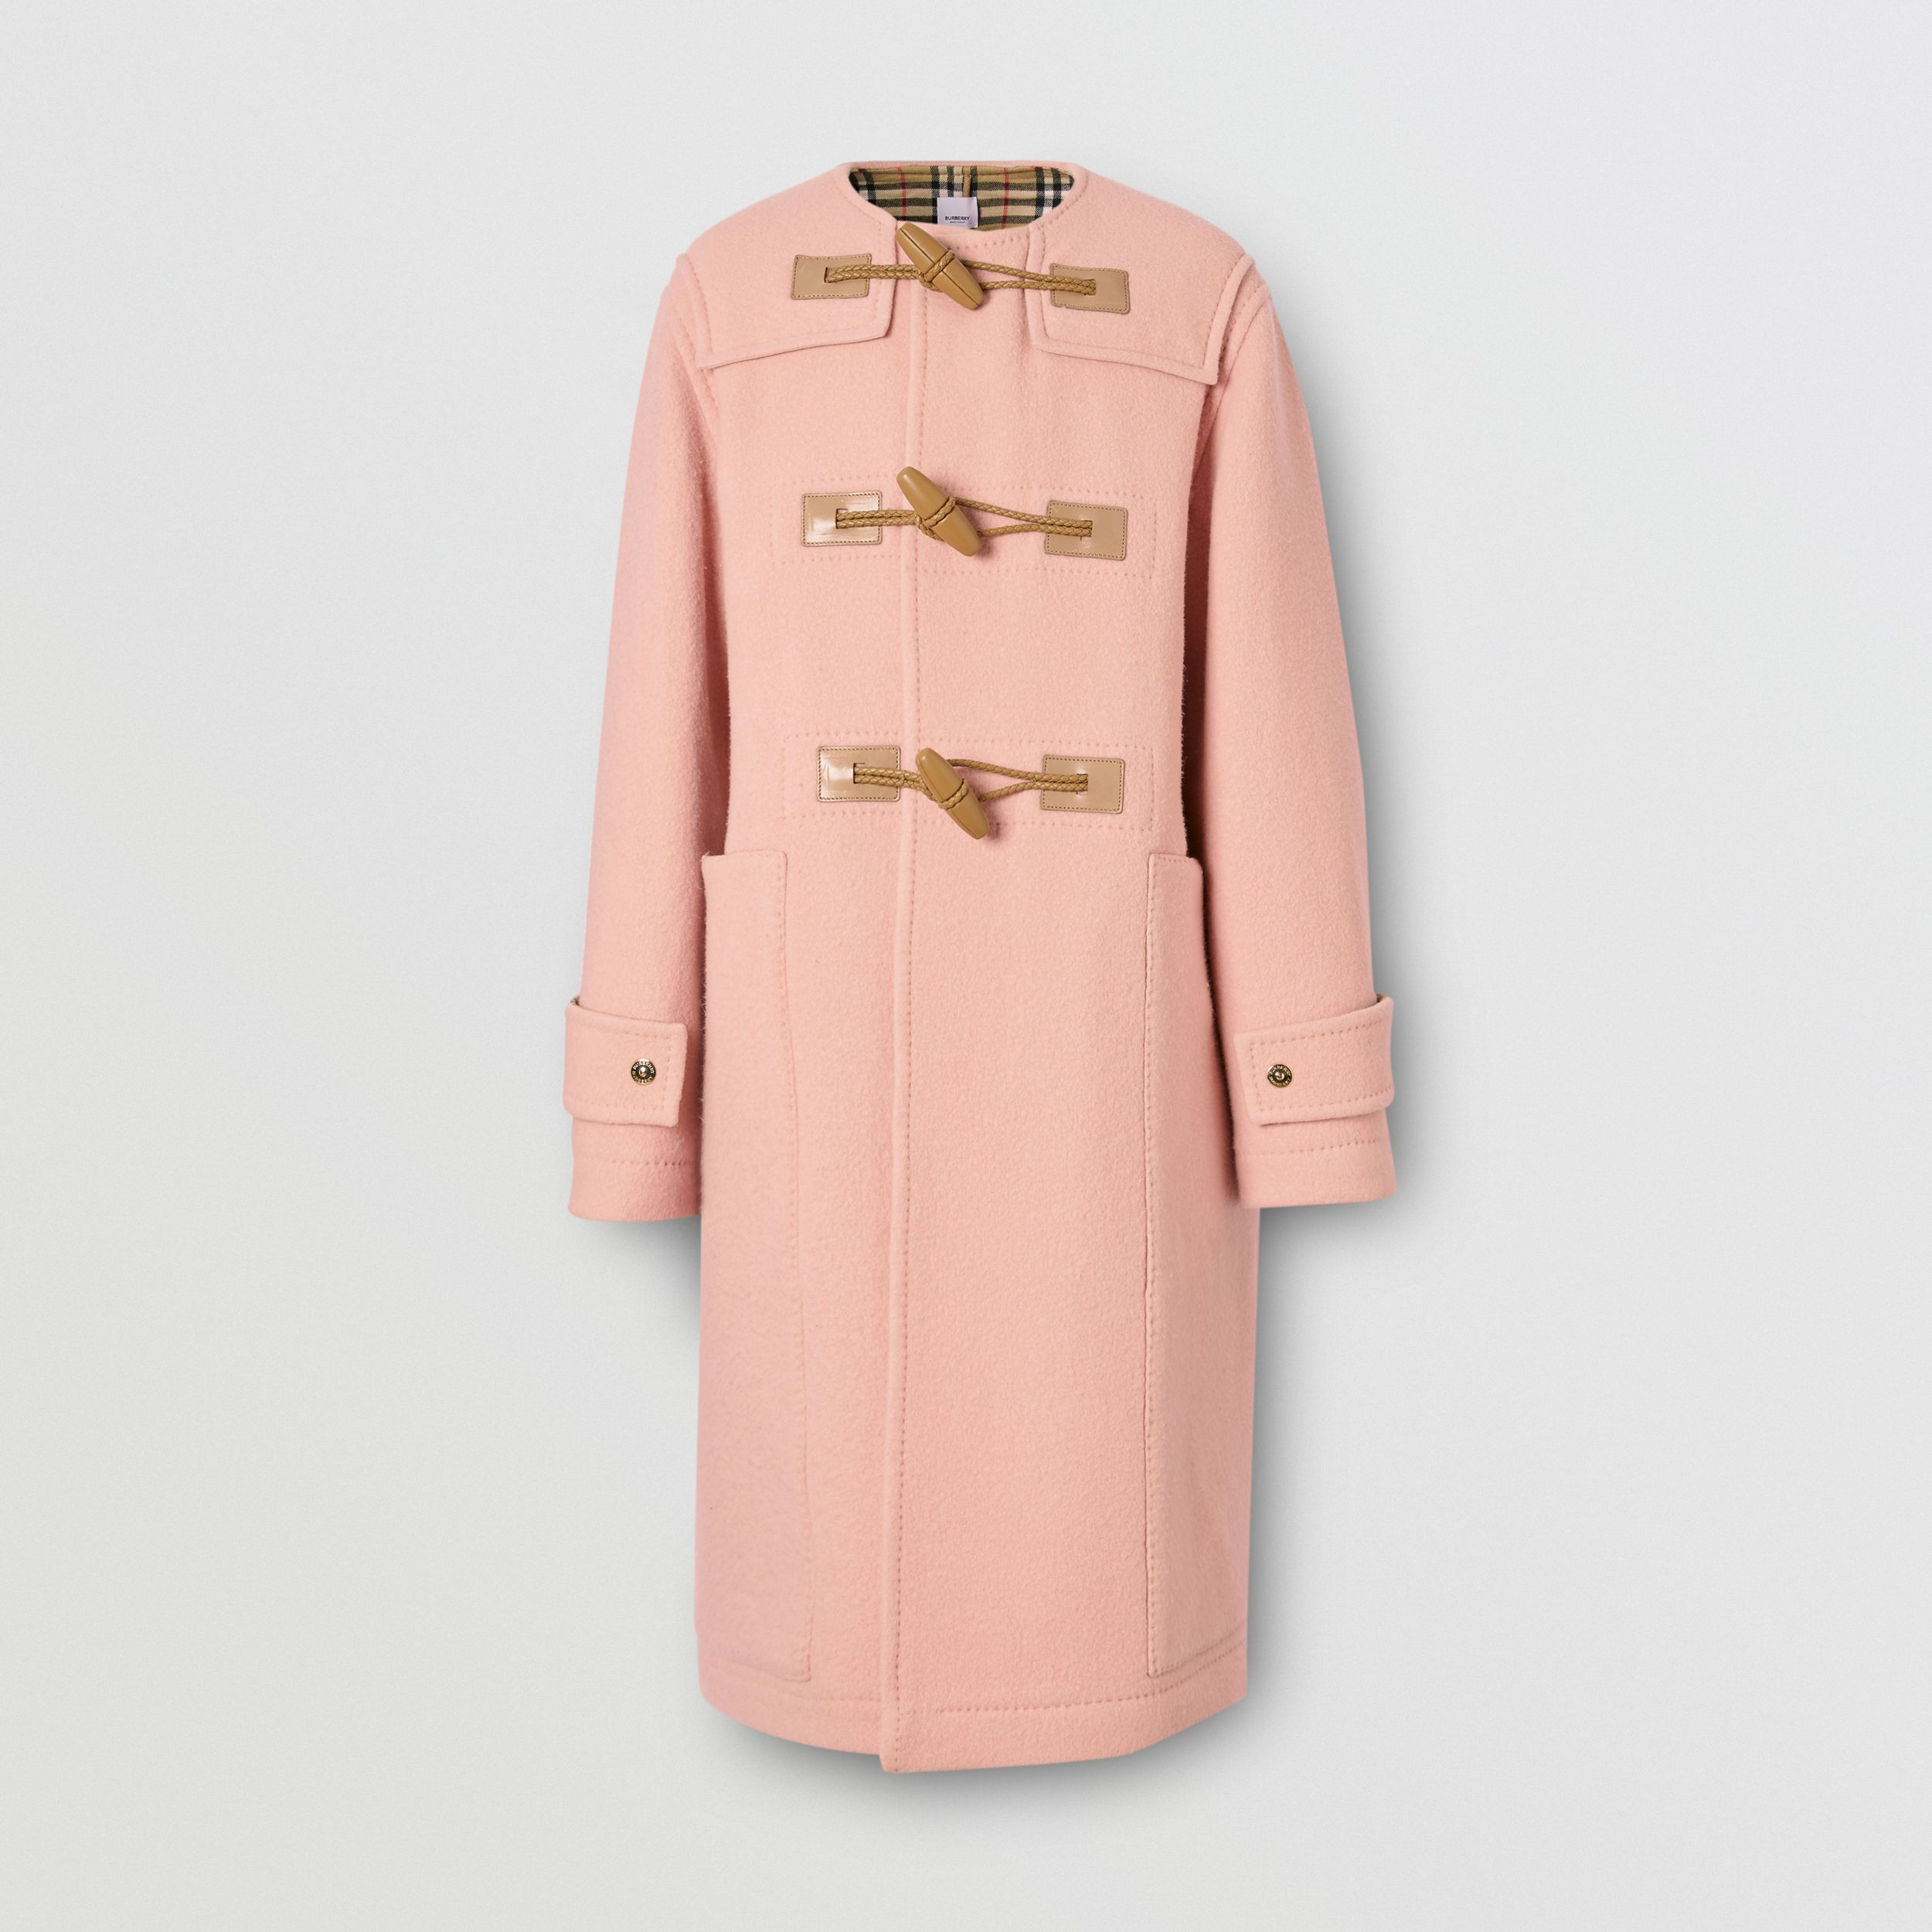 Vintage Check-lined Felted Wool Duffle Coat in Dusty Pink | Burberry - 3